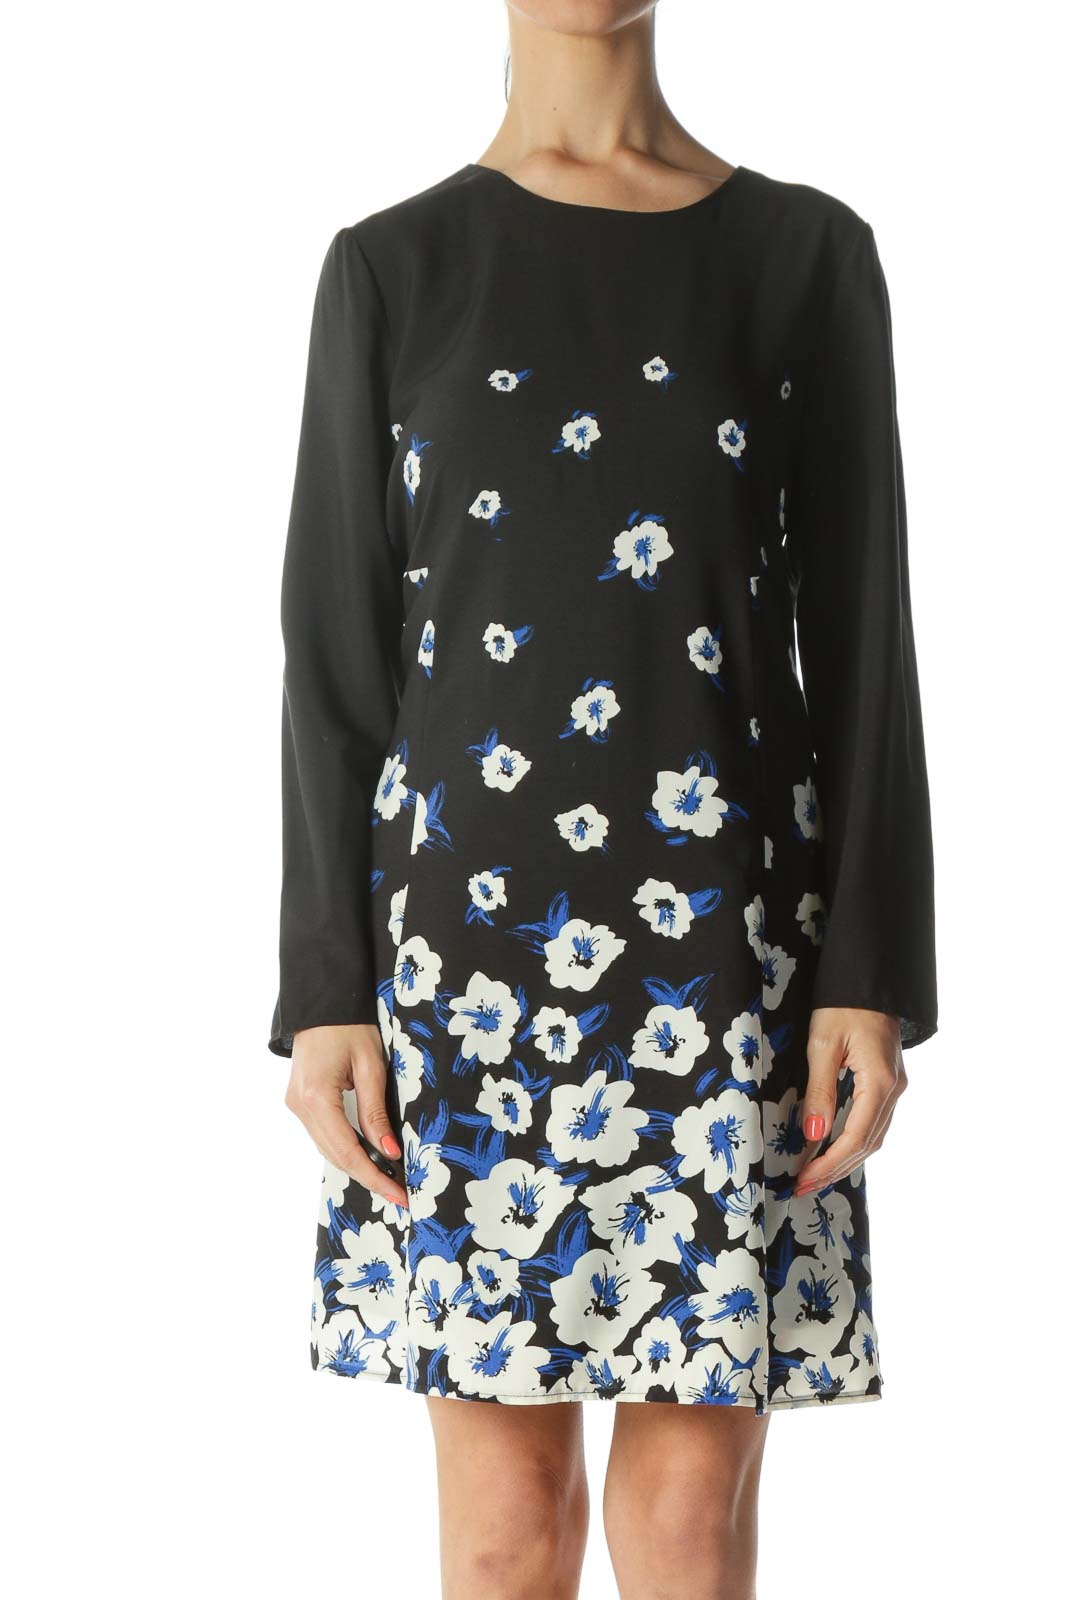 Black/Blue/White Floral-Print Keyhole-Back Work Dress